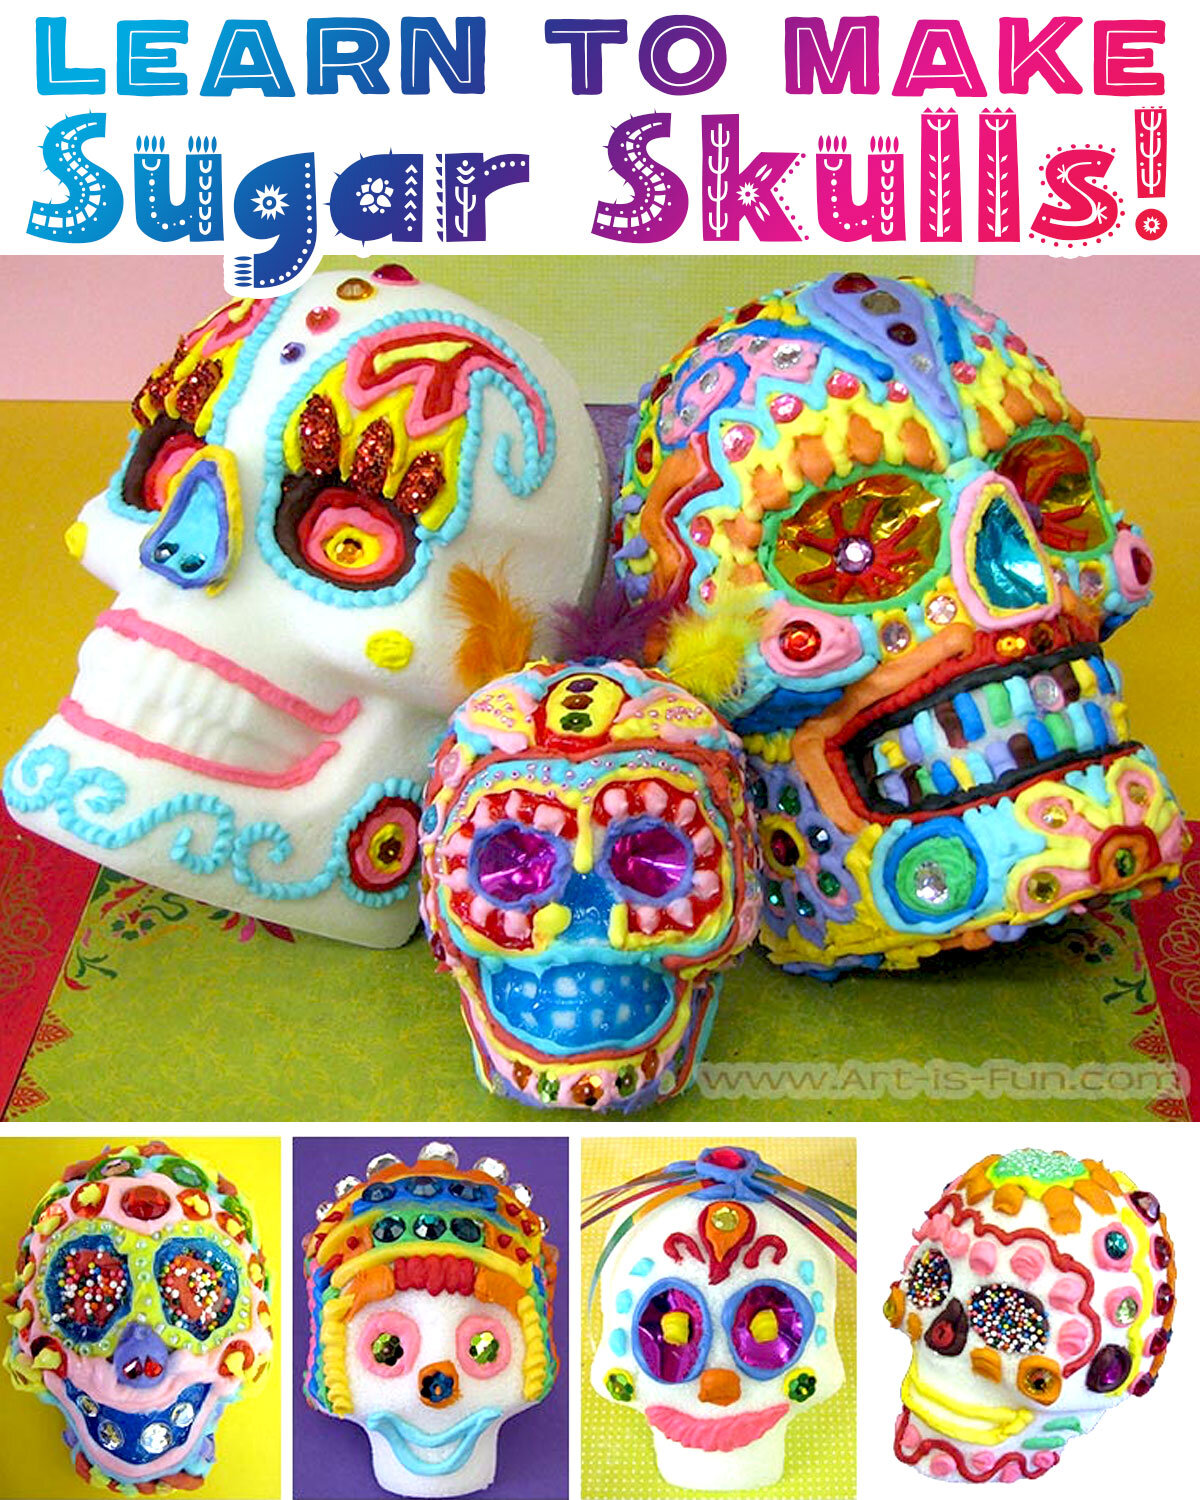 Learn how to make real Day of the Dead sugar skulls in this step-by-step demo with lots of photos! —on Art-is-Fun.com